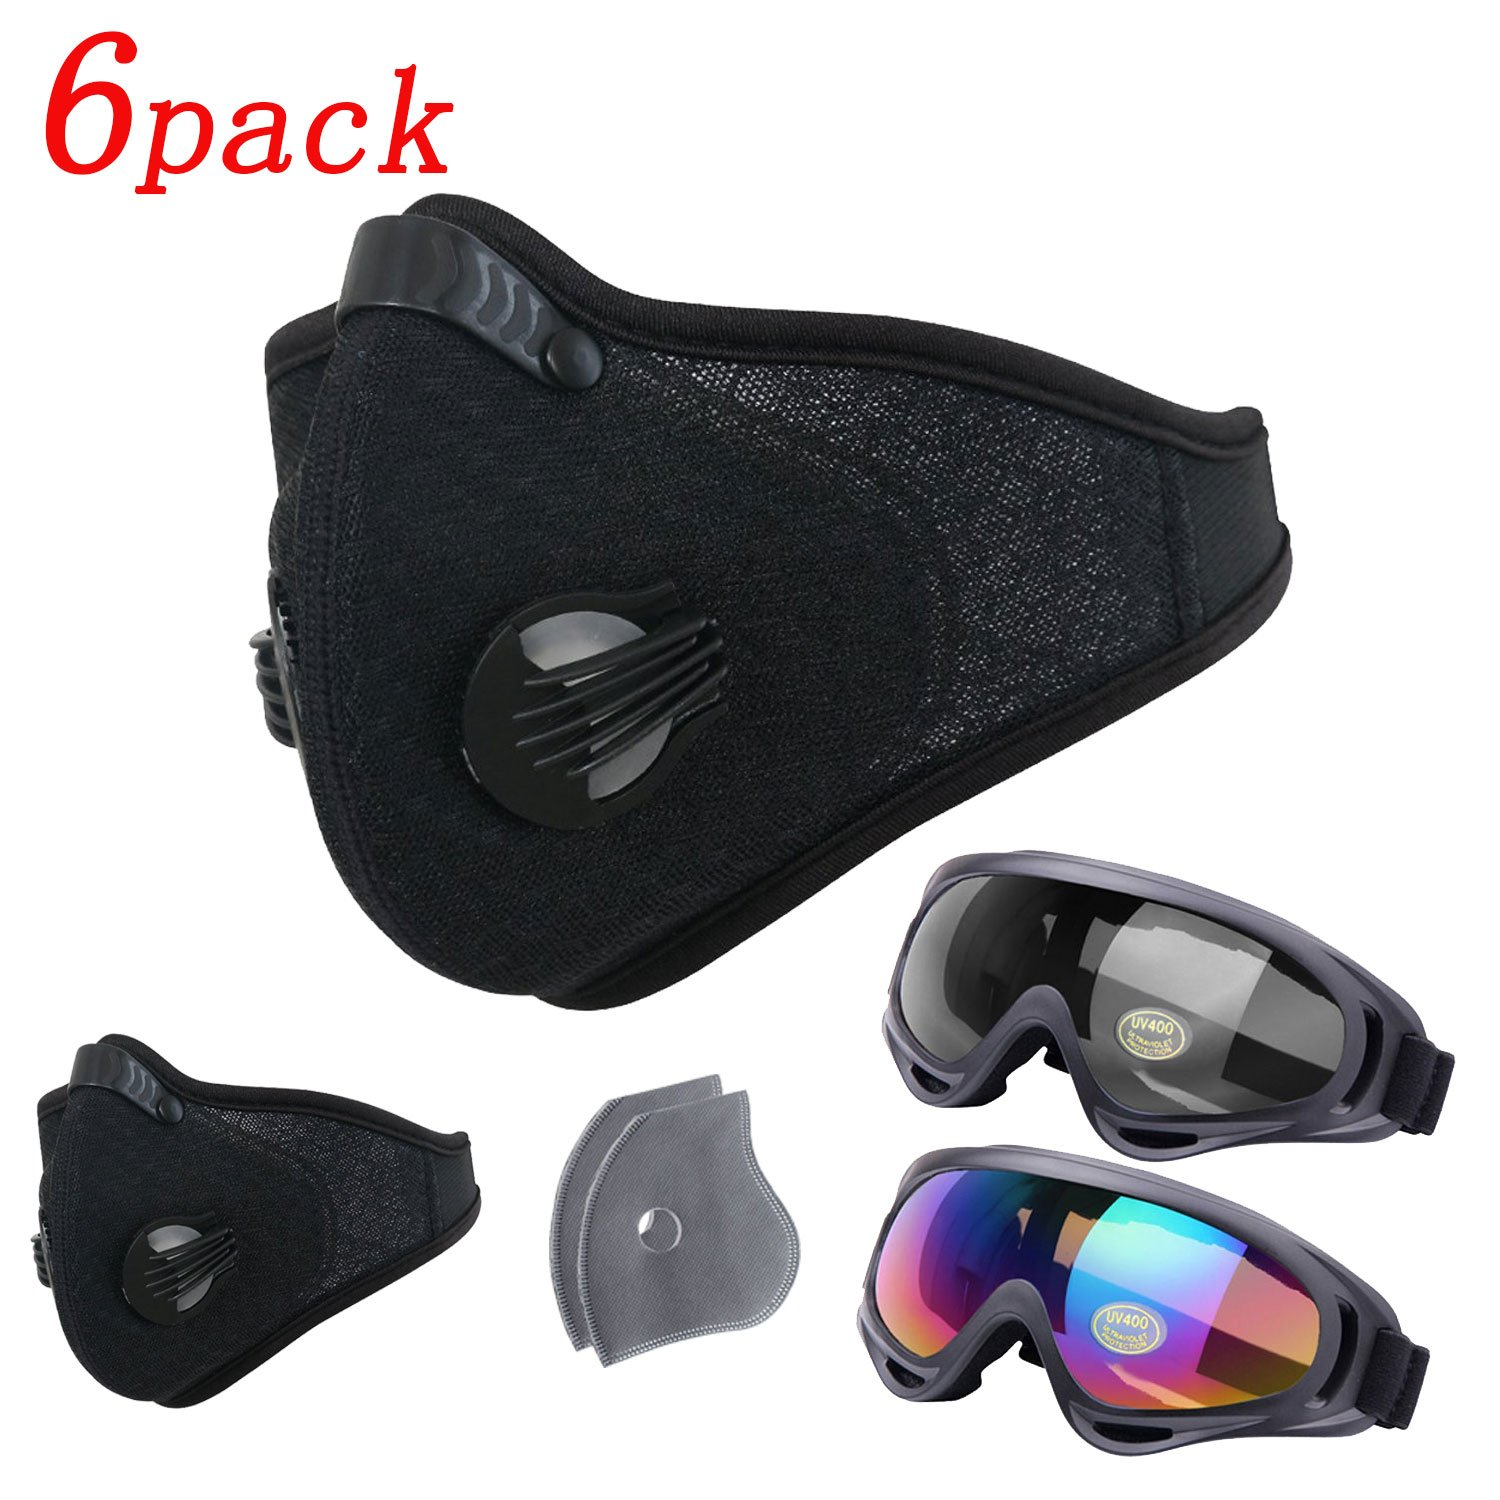 6Pack Activated Carbon Dustproof Mask - Include 2 Pack Safety Glasses 2 Pack Filter, Filtration Exhaust Gas Anti Pollen Allergy PM2.5 Dust Mask Air Filter for Running Cycling Diy Outdoor Activities